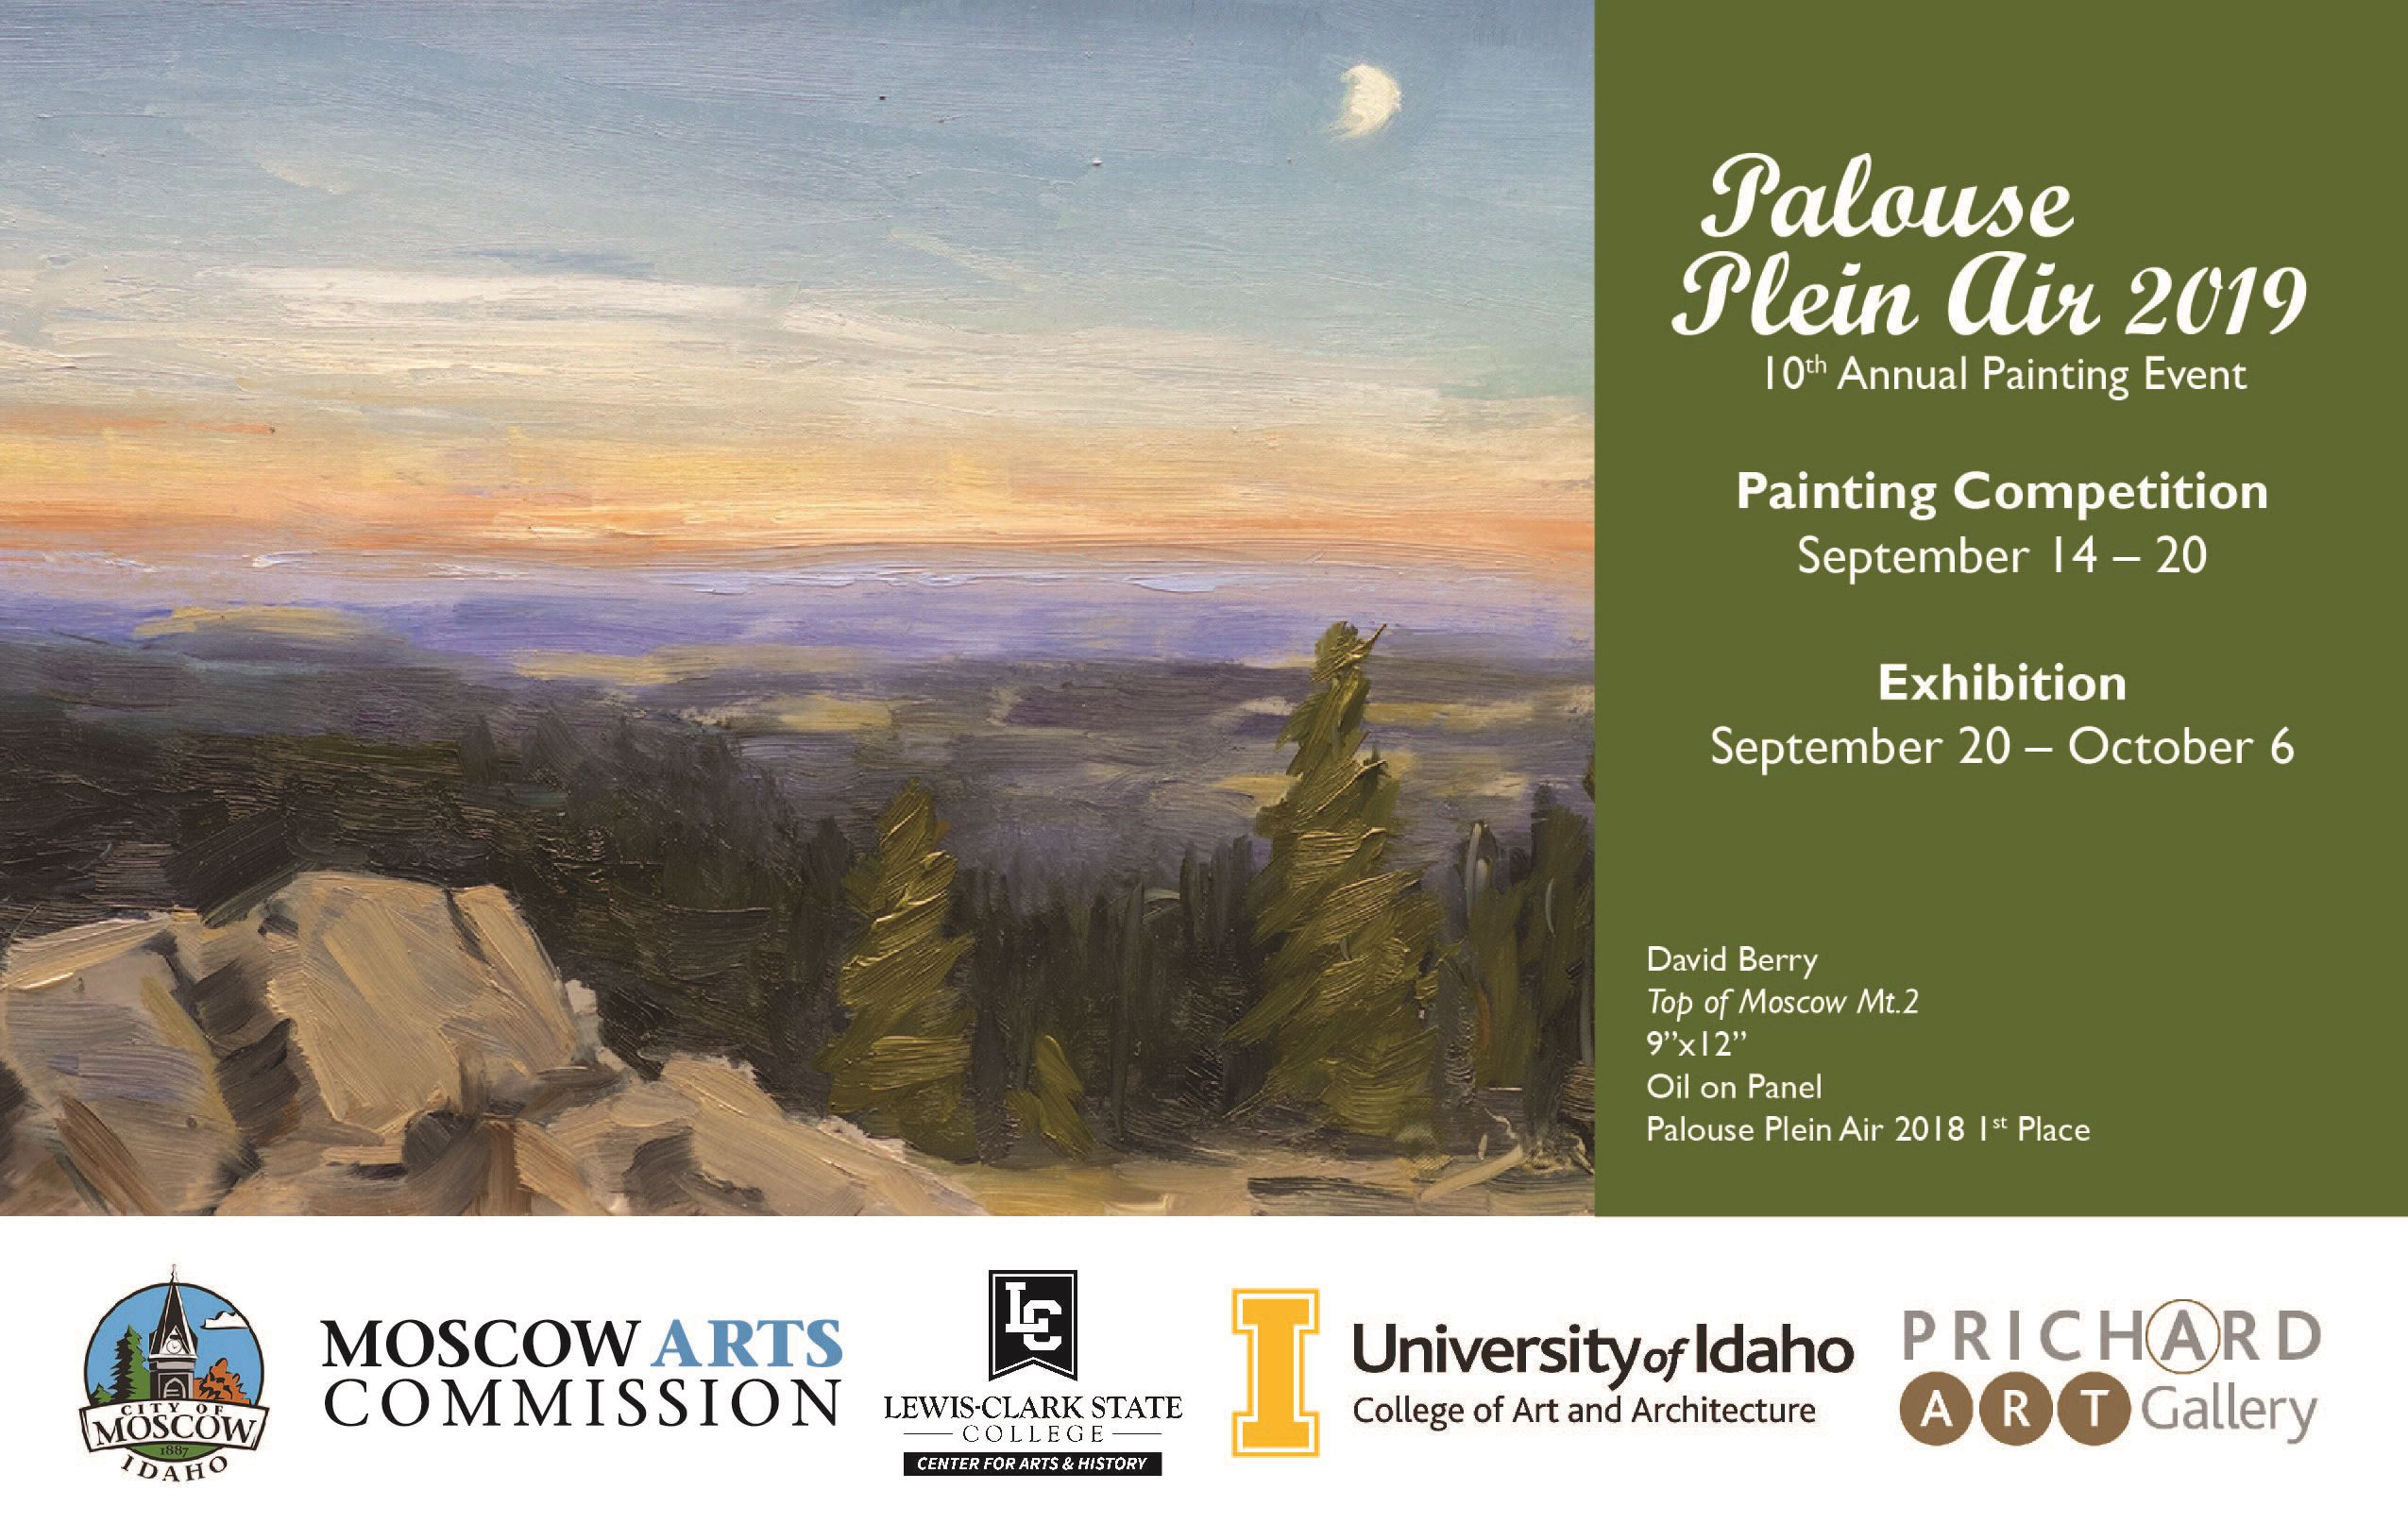 Promotional image for Palouse Plein Air 2019